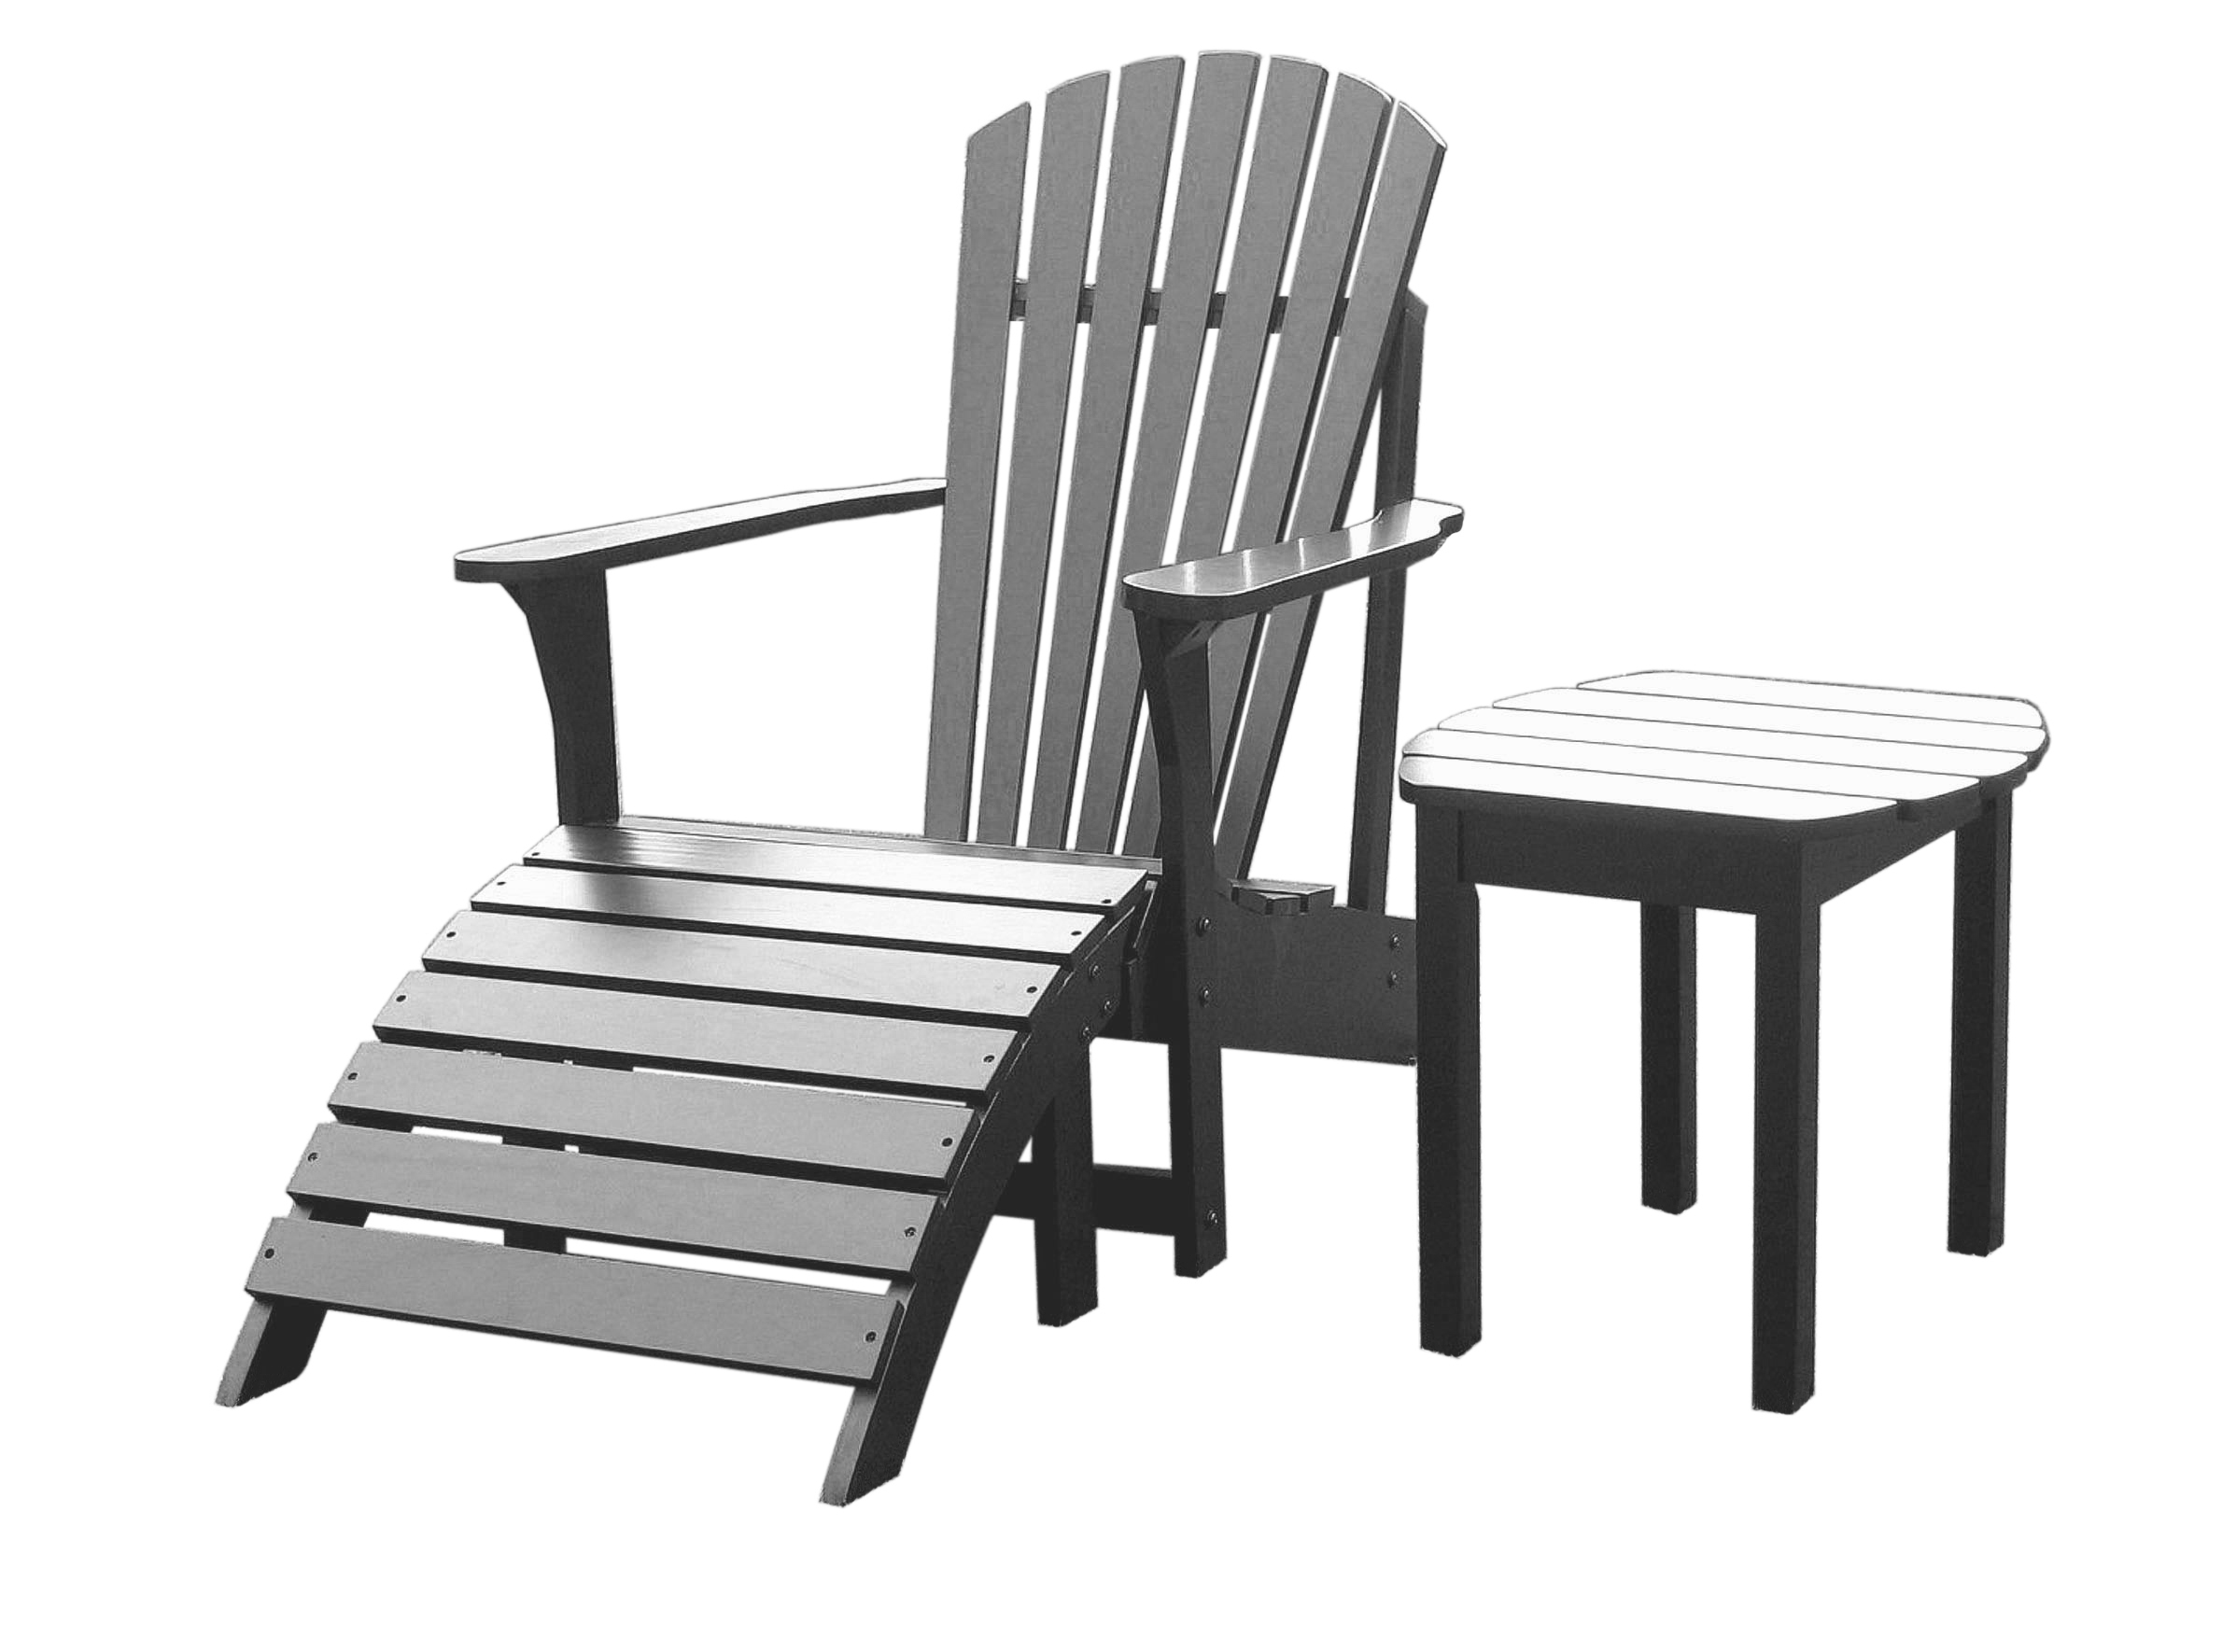 walmart adirondack chairs posture with chair and side table in black